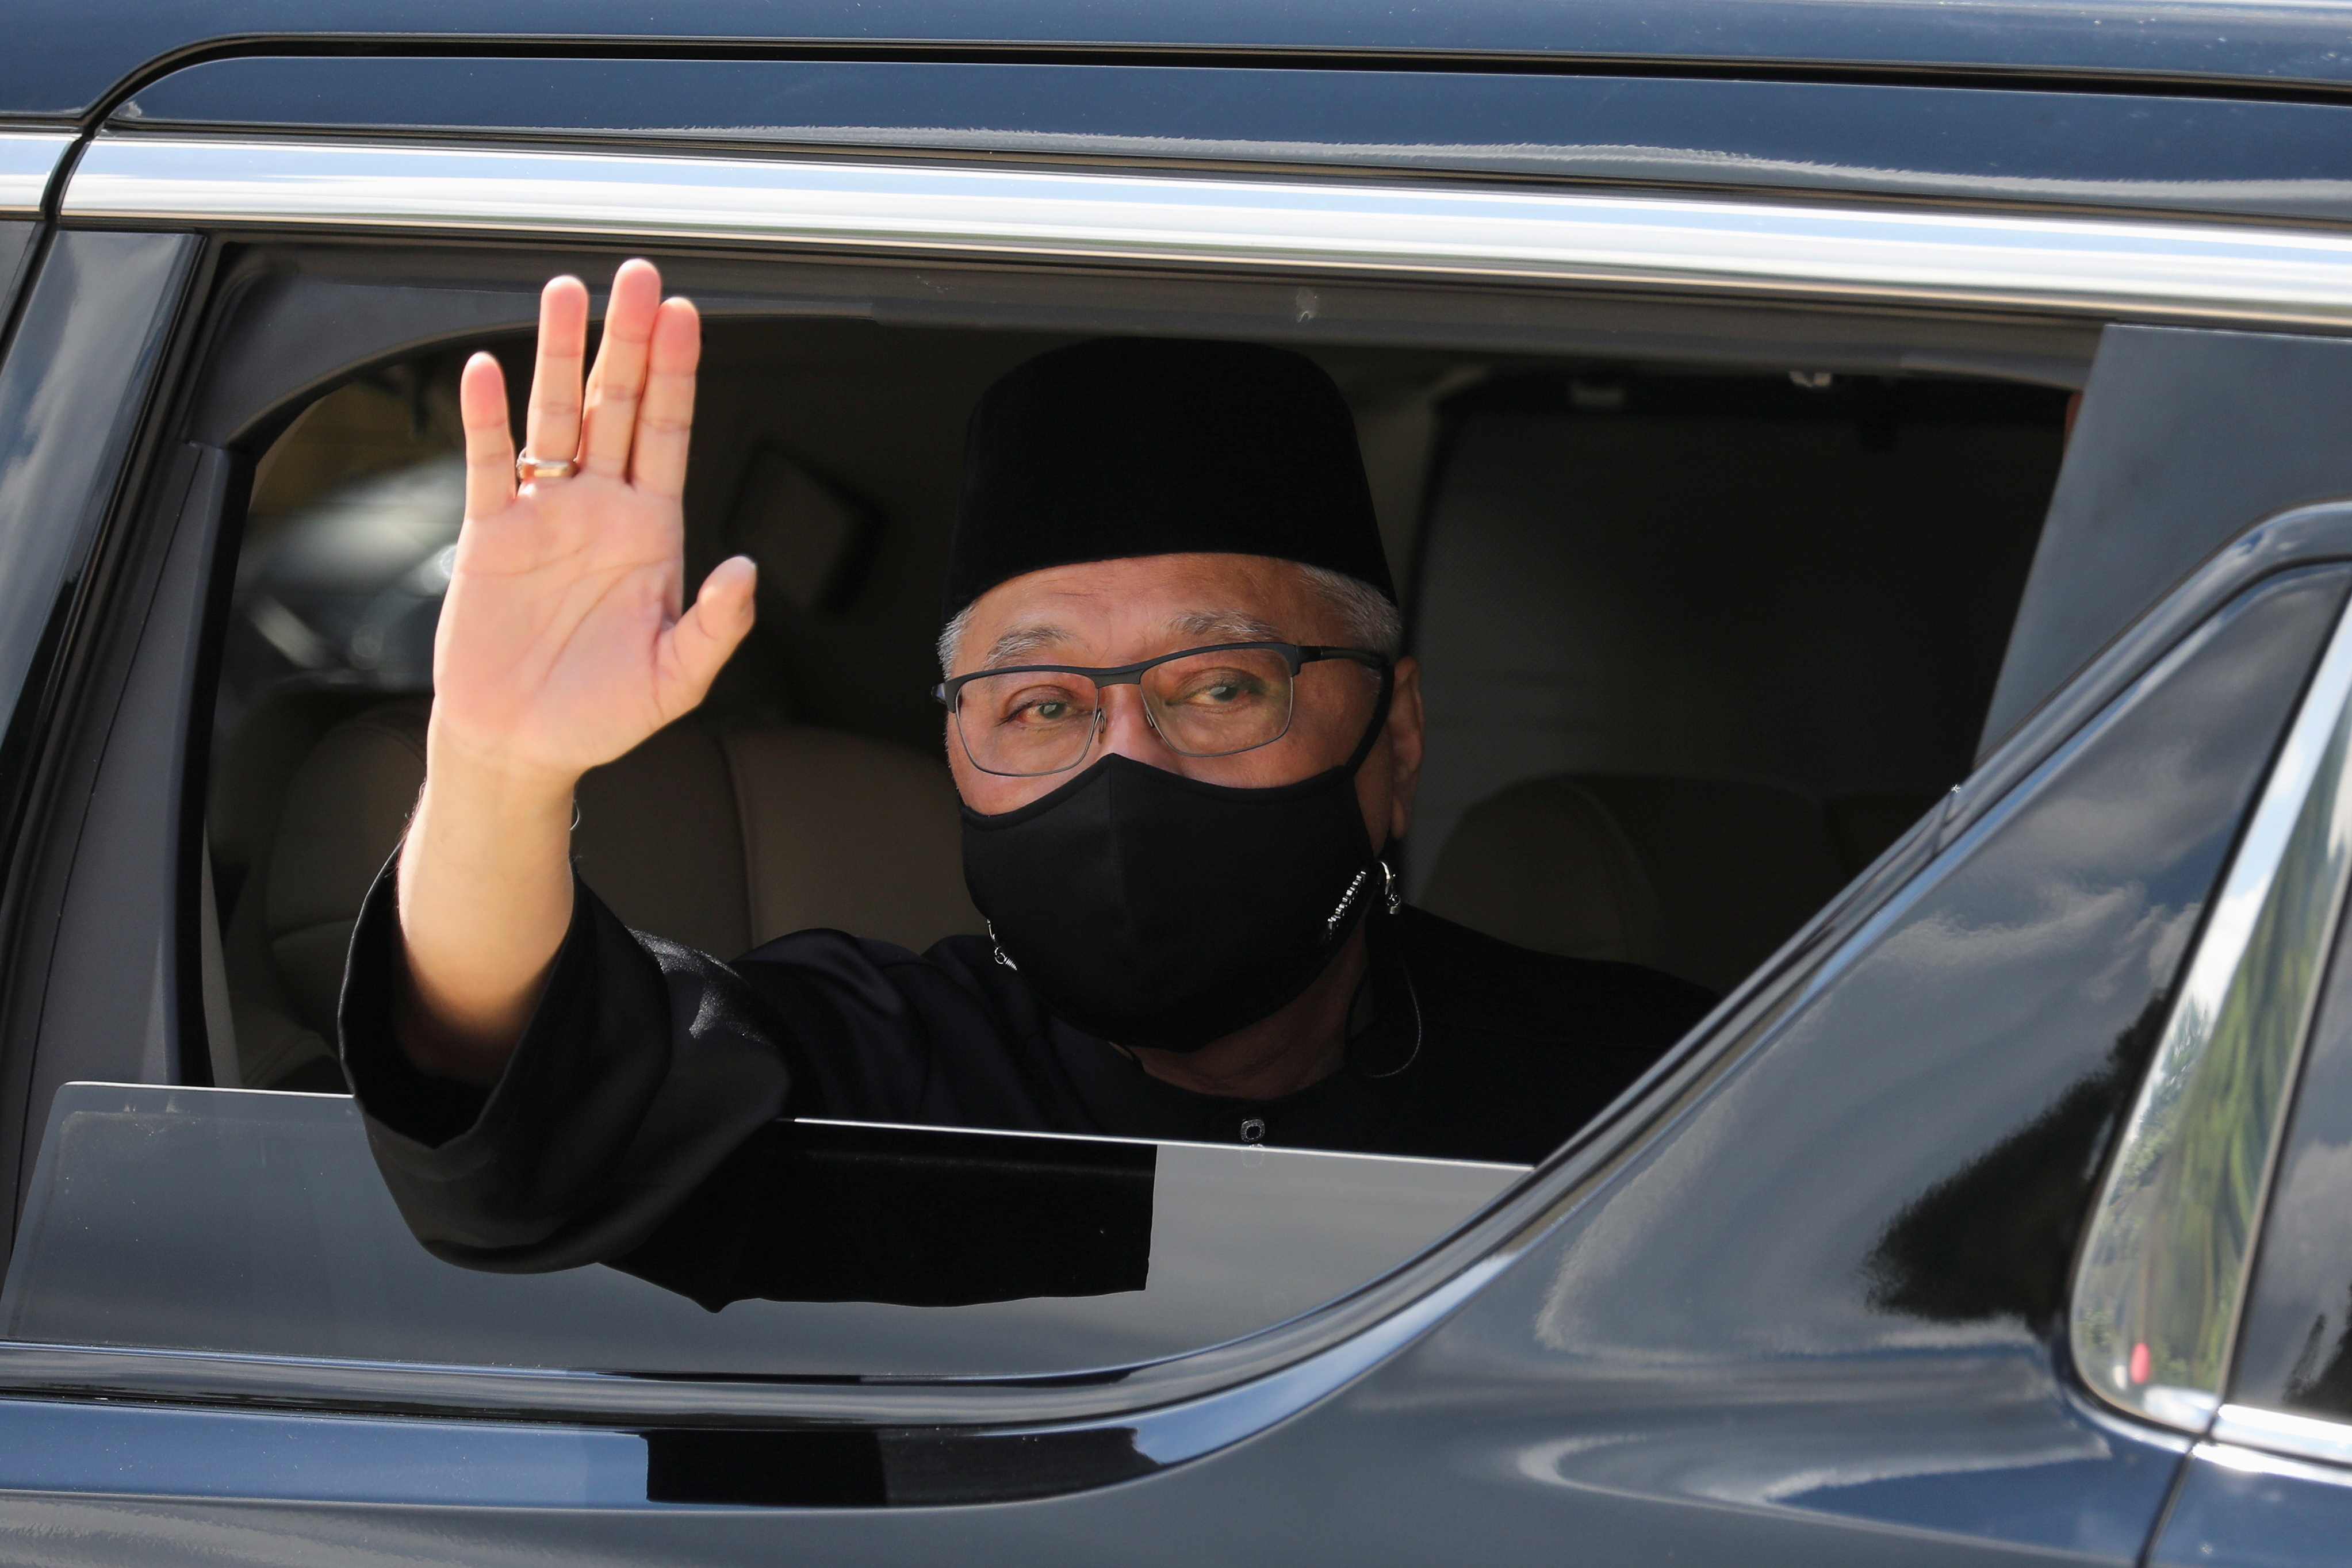 New Malaysian Prime Minister Ismail Sabri Yaakob waves from a car, as he leaves after the inauguration ceremony, in Kuala Lumpur, Malaysia August 21, 2021. REUTERS/Lim Huey Teng/File Photo